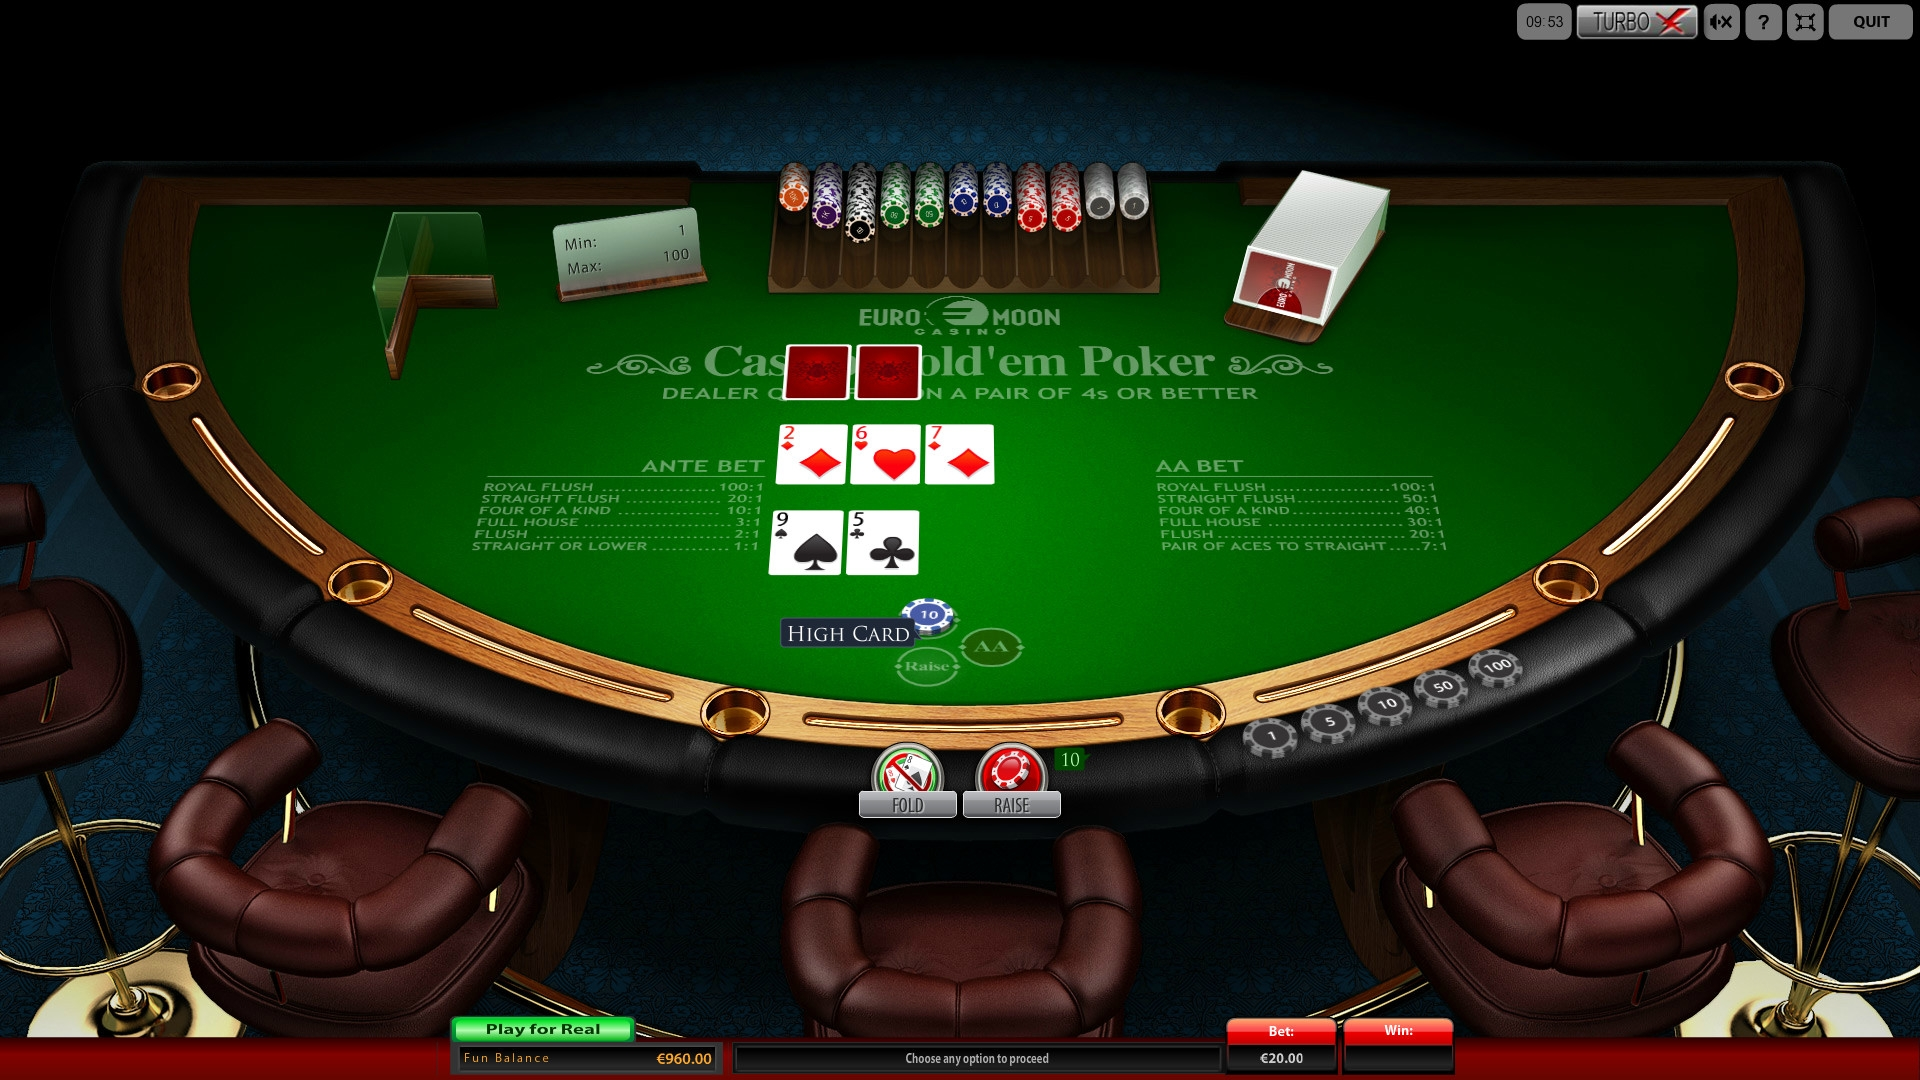 CasinoHold'em Poker (Casino Hold'em Poker) from category Poker